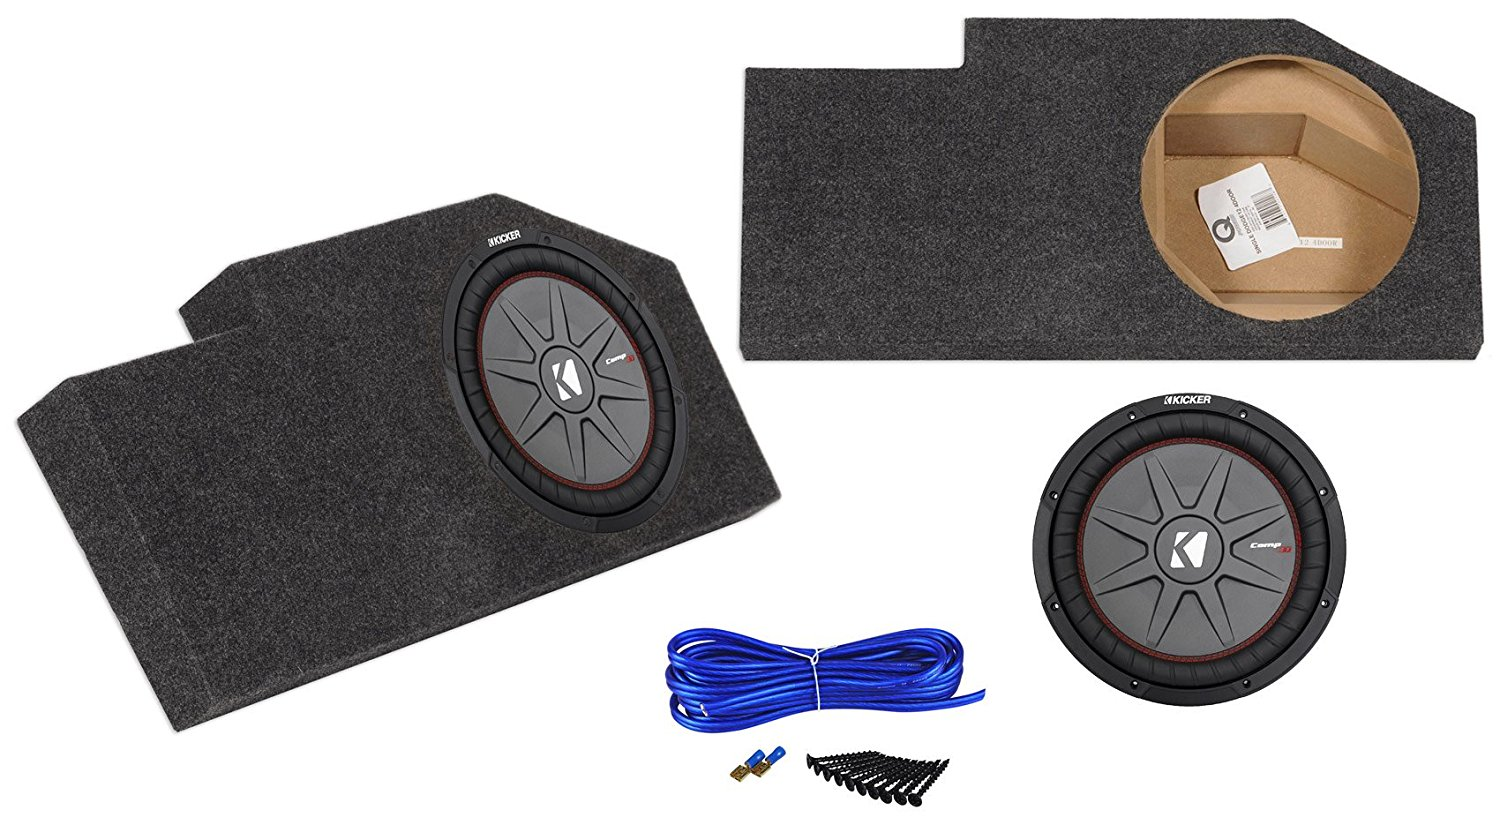 Cheap Dodge Ram 1500 Subwoofer Box Find Crew Cab Sub Get Quotations Sealed Enclosure Kicker 12 Slim For 02 Up